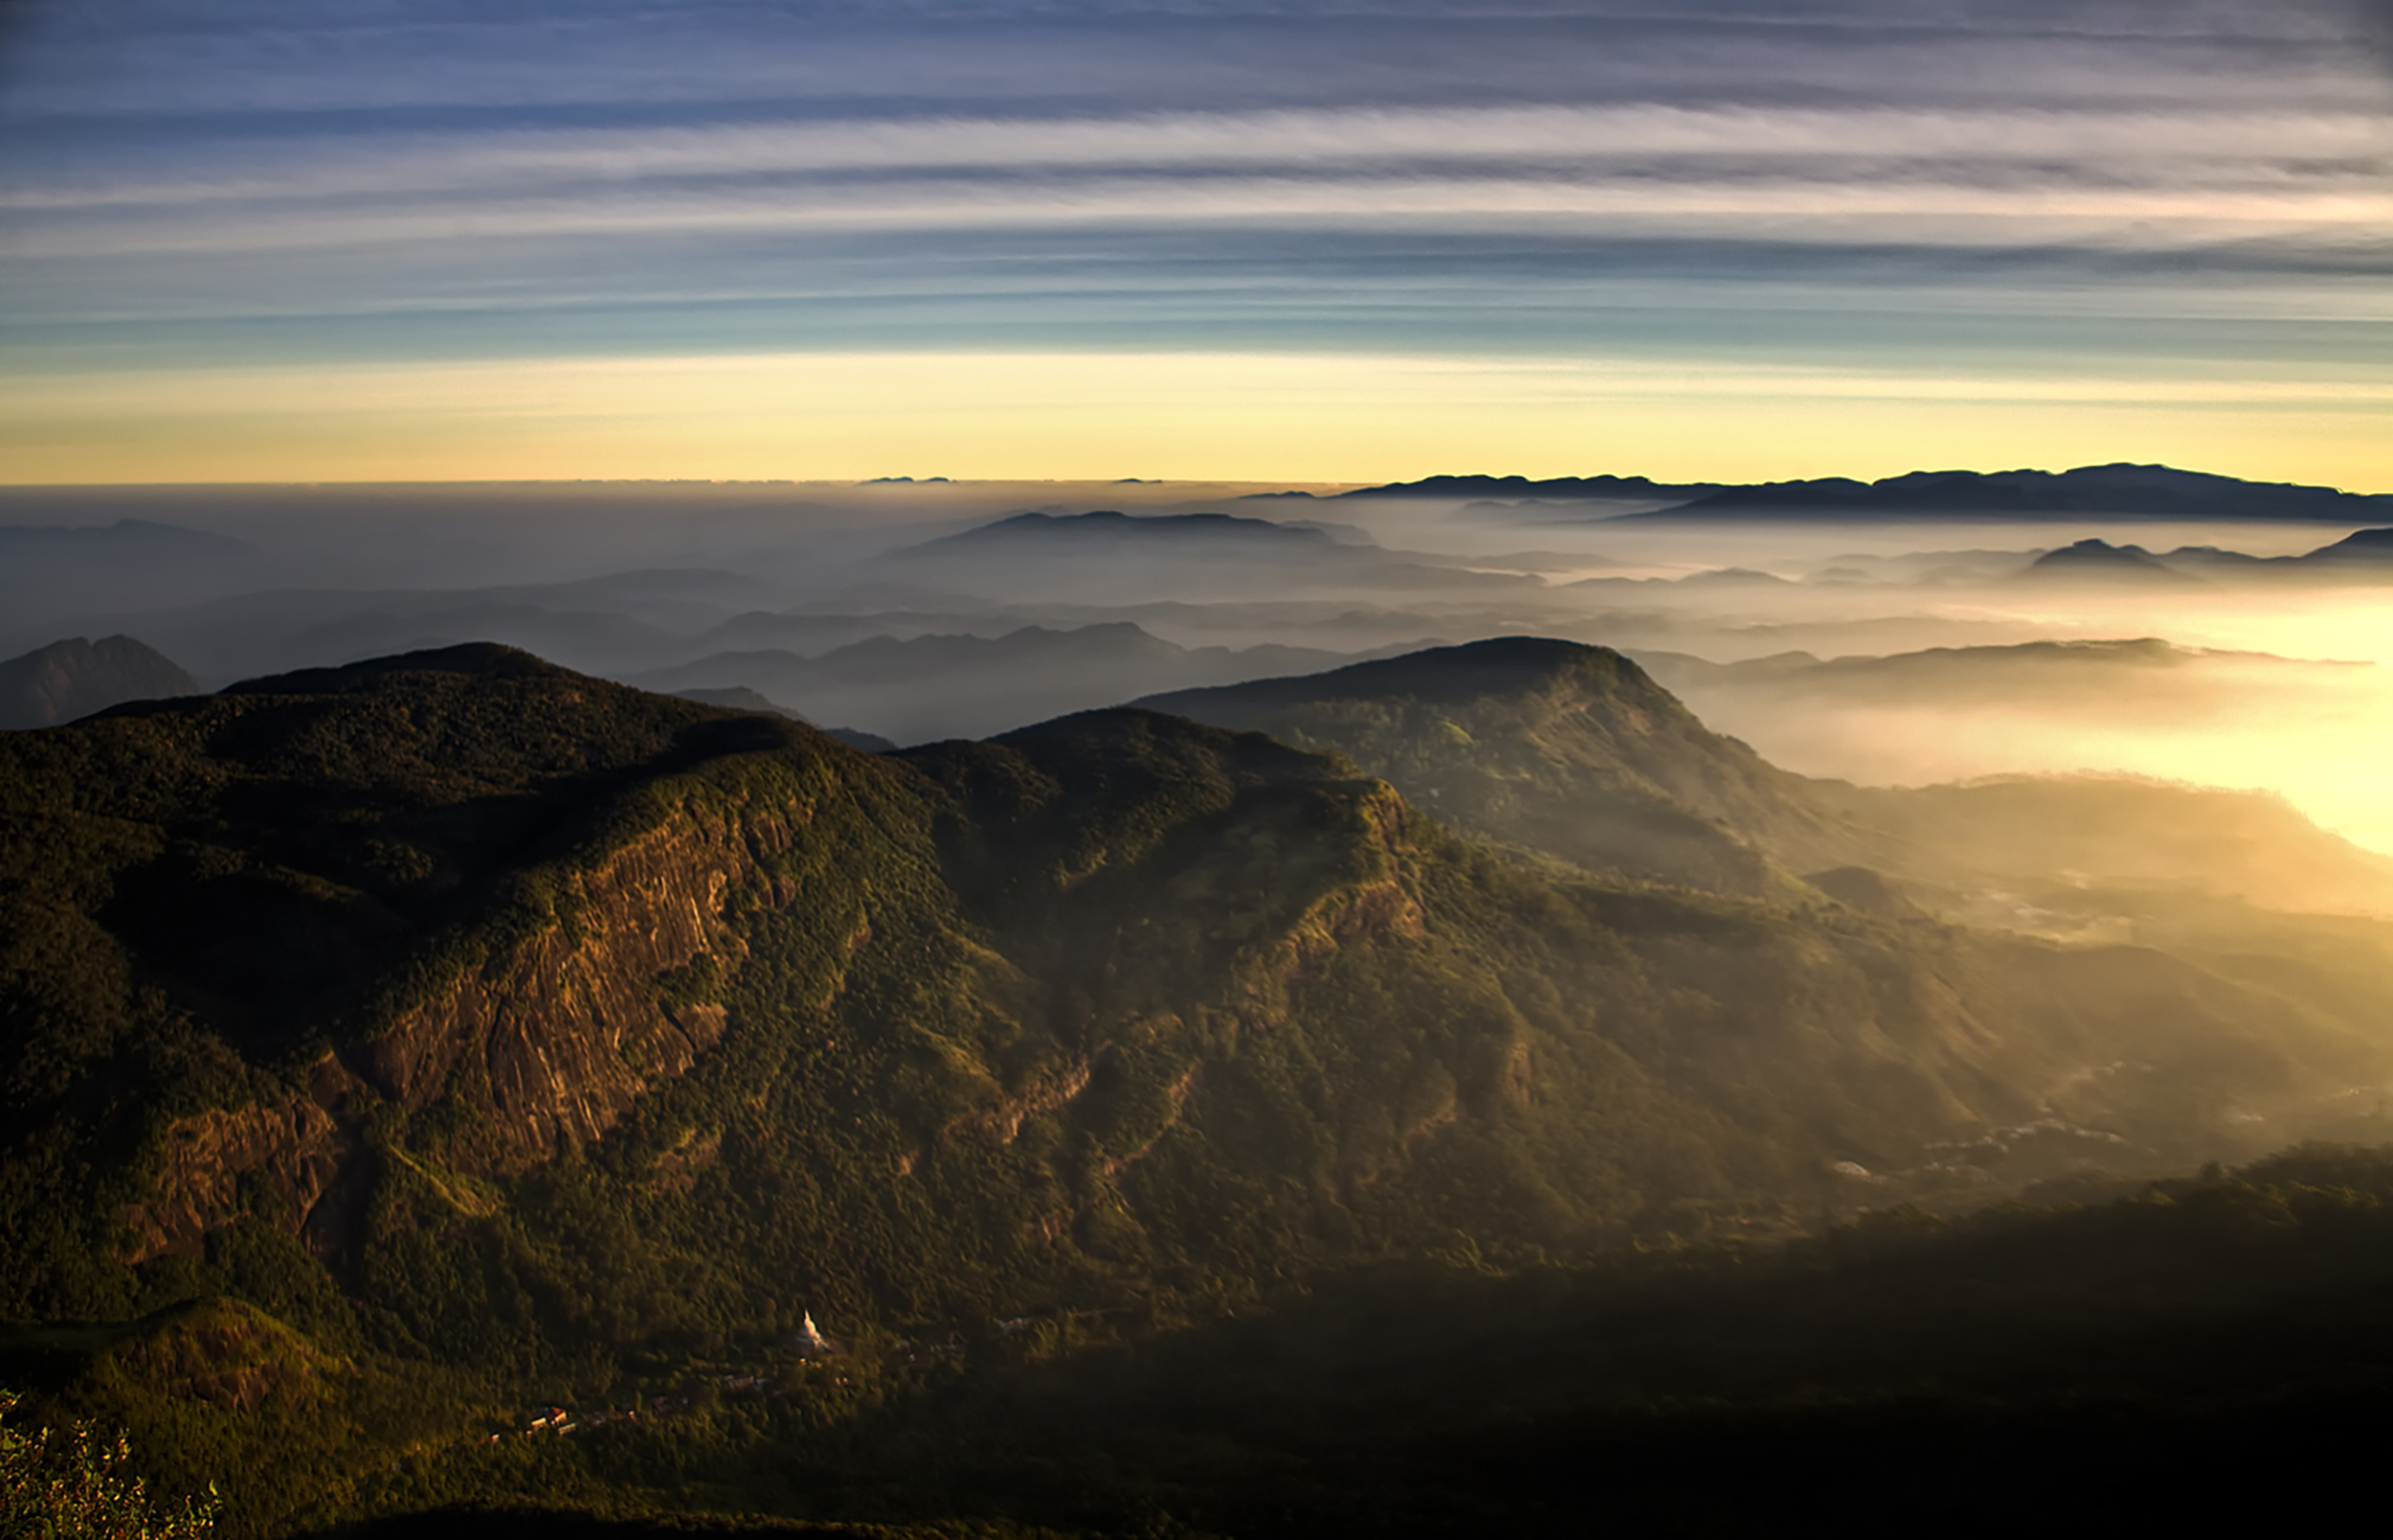 View from Adam's Peak at sunrise